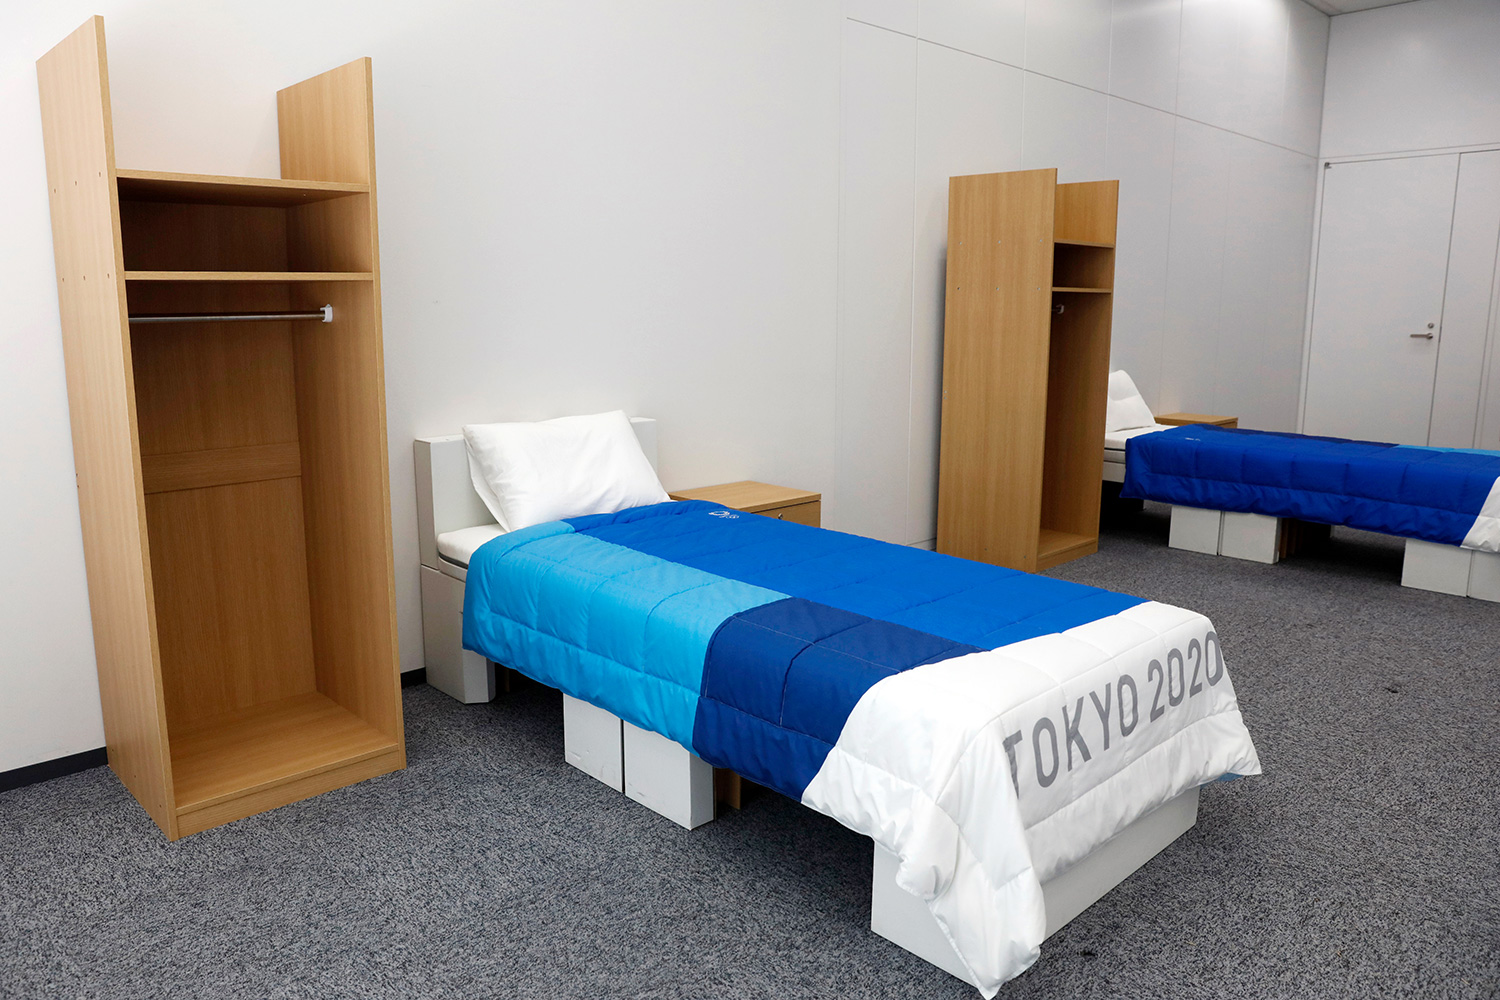 Two sets of bedroom furniture, including cardboard beds, for the Tokyo 2020 Olympic and Paralympic Villages are shown in a display room, in Tokyo. Tokyo Olympic athletes beware - particularly larger ones. The single bed frames in the Athletes Village at this year's Olympics will be made of cardboard. The single bed frames will be recycled into paper products after the games. The mattress components - the mattress are not made of cardboard - will be recycled into plastic products Olympics Cardboard Beds, Tokyo, Japan - 09 Jan 2020